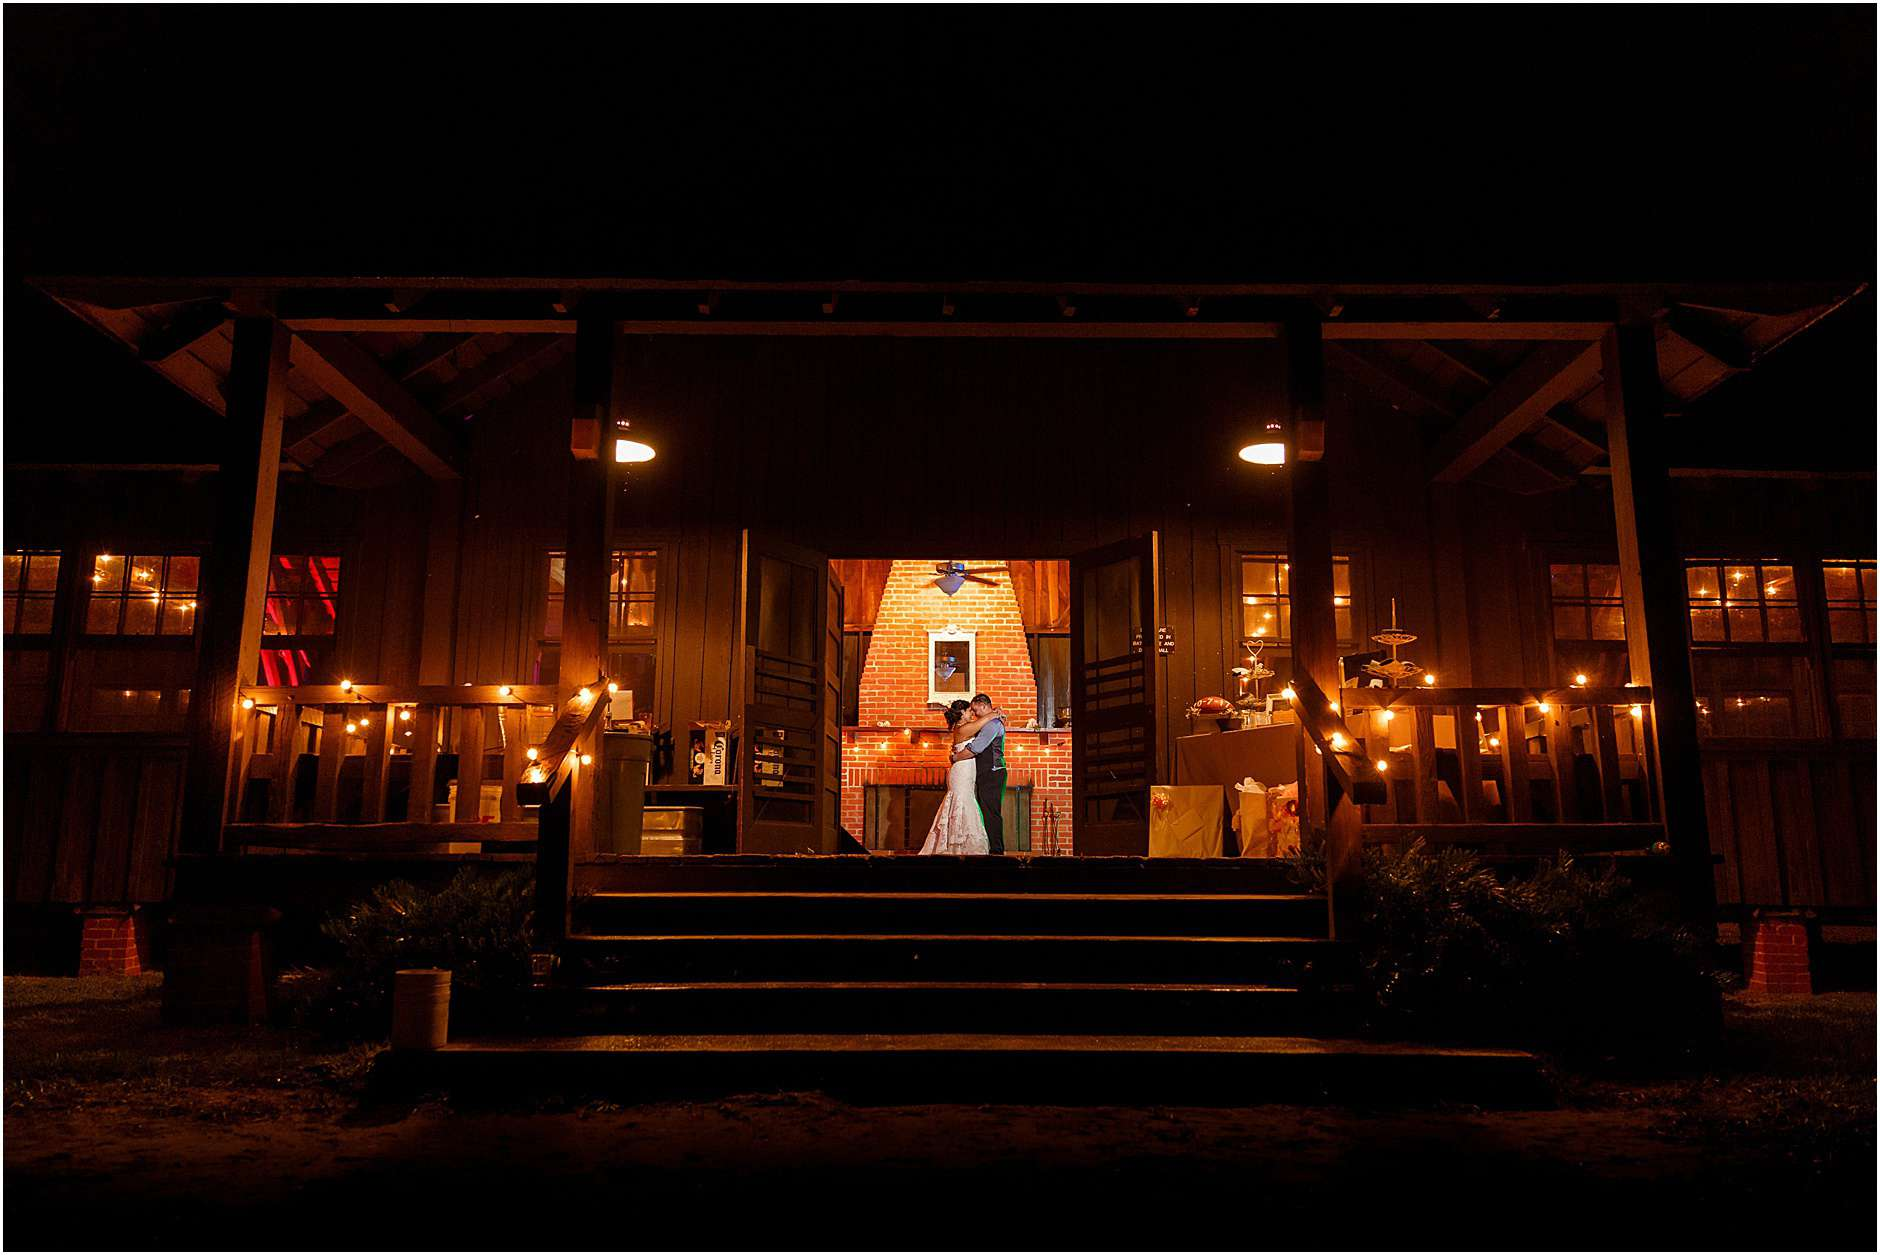 The bride & groom share a last dance alone in the glowing light of their venue.